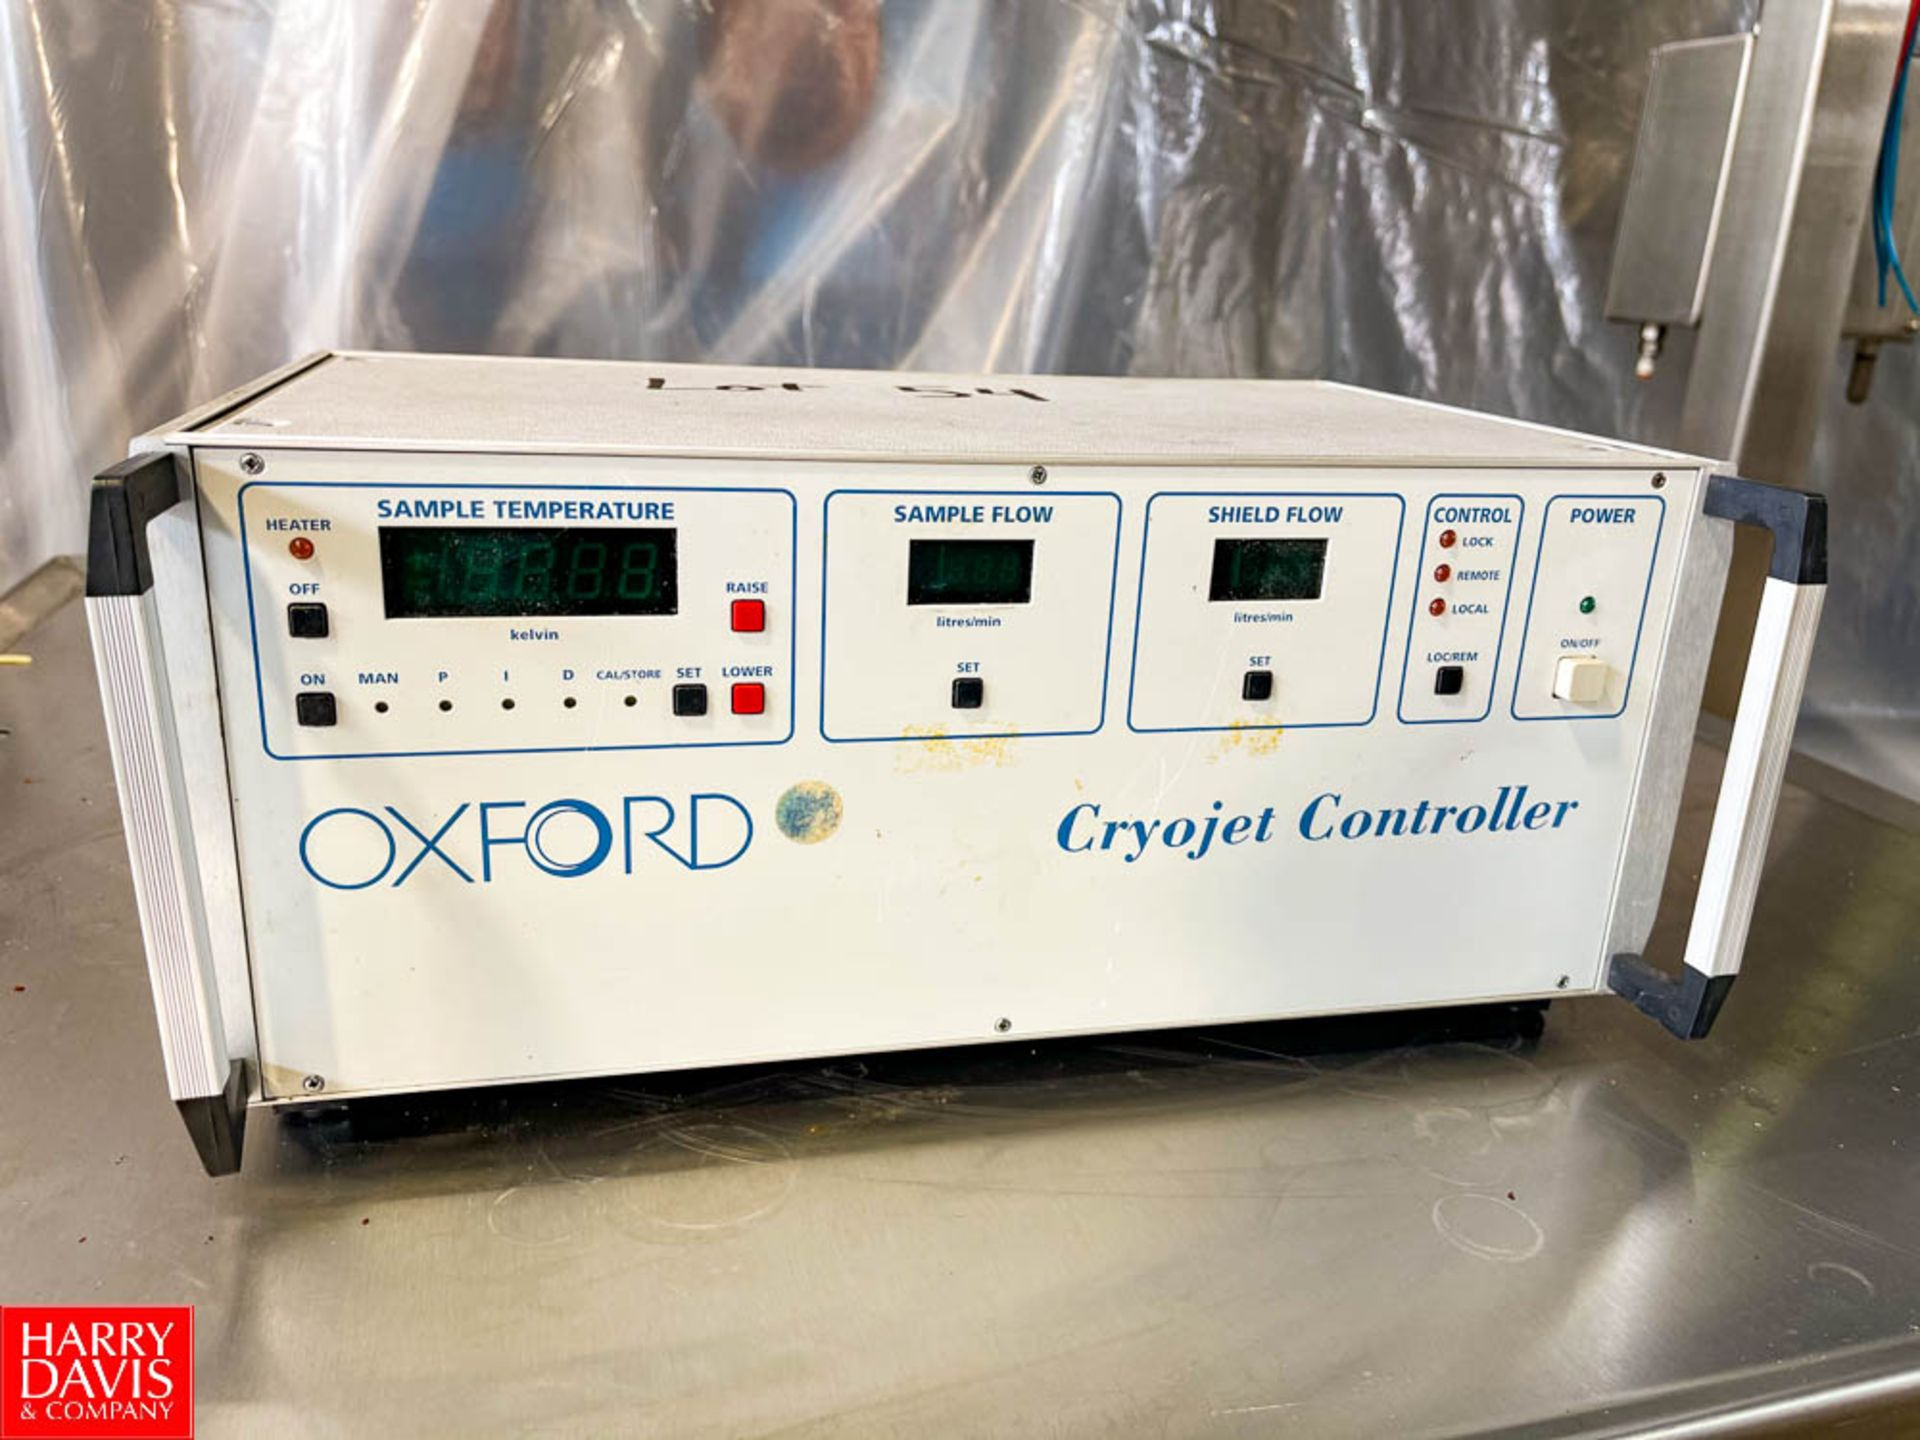 Oxford Instruments Cryojet Controller